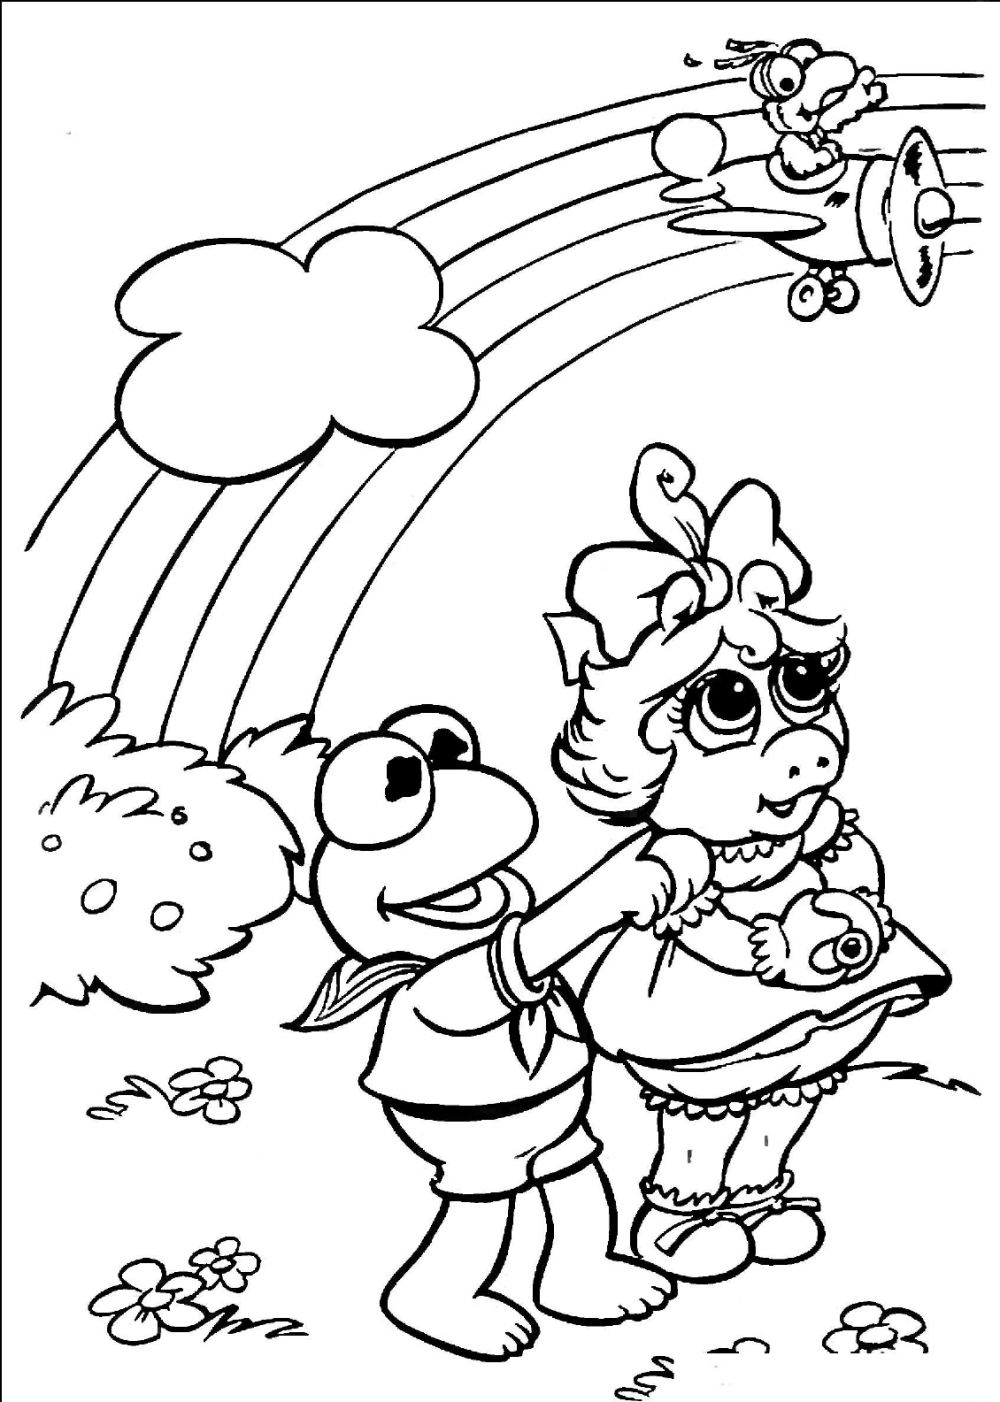 Coloring Pages Rainbow Fairy Coloring Pages free printable rainbow coloring pages for kids magic fairy pages